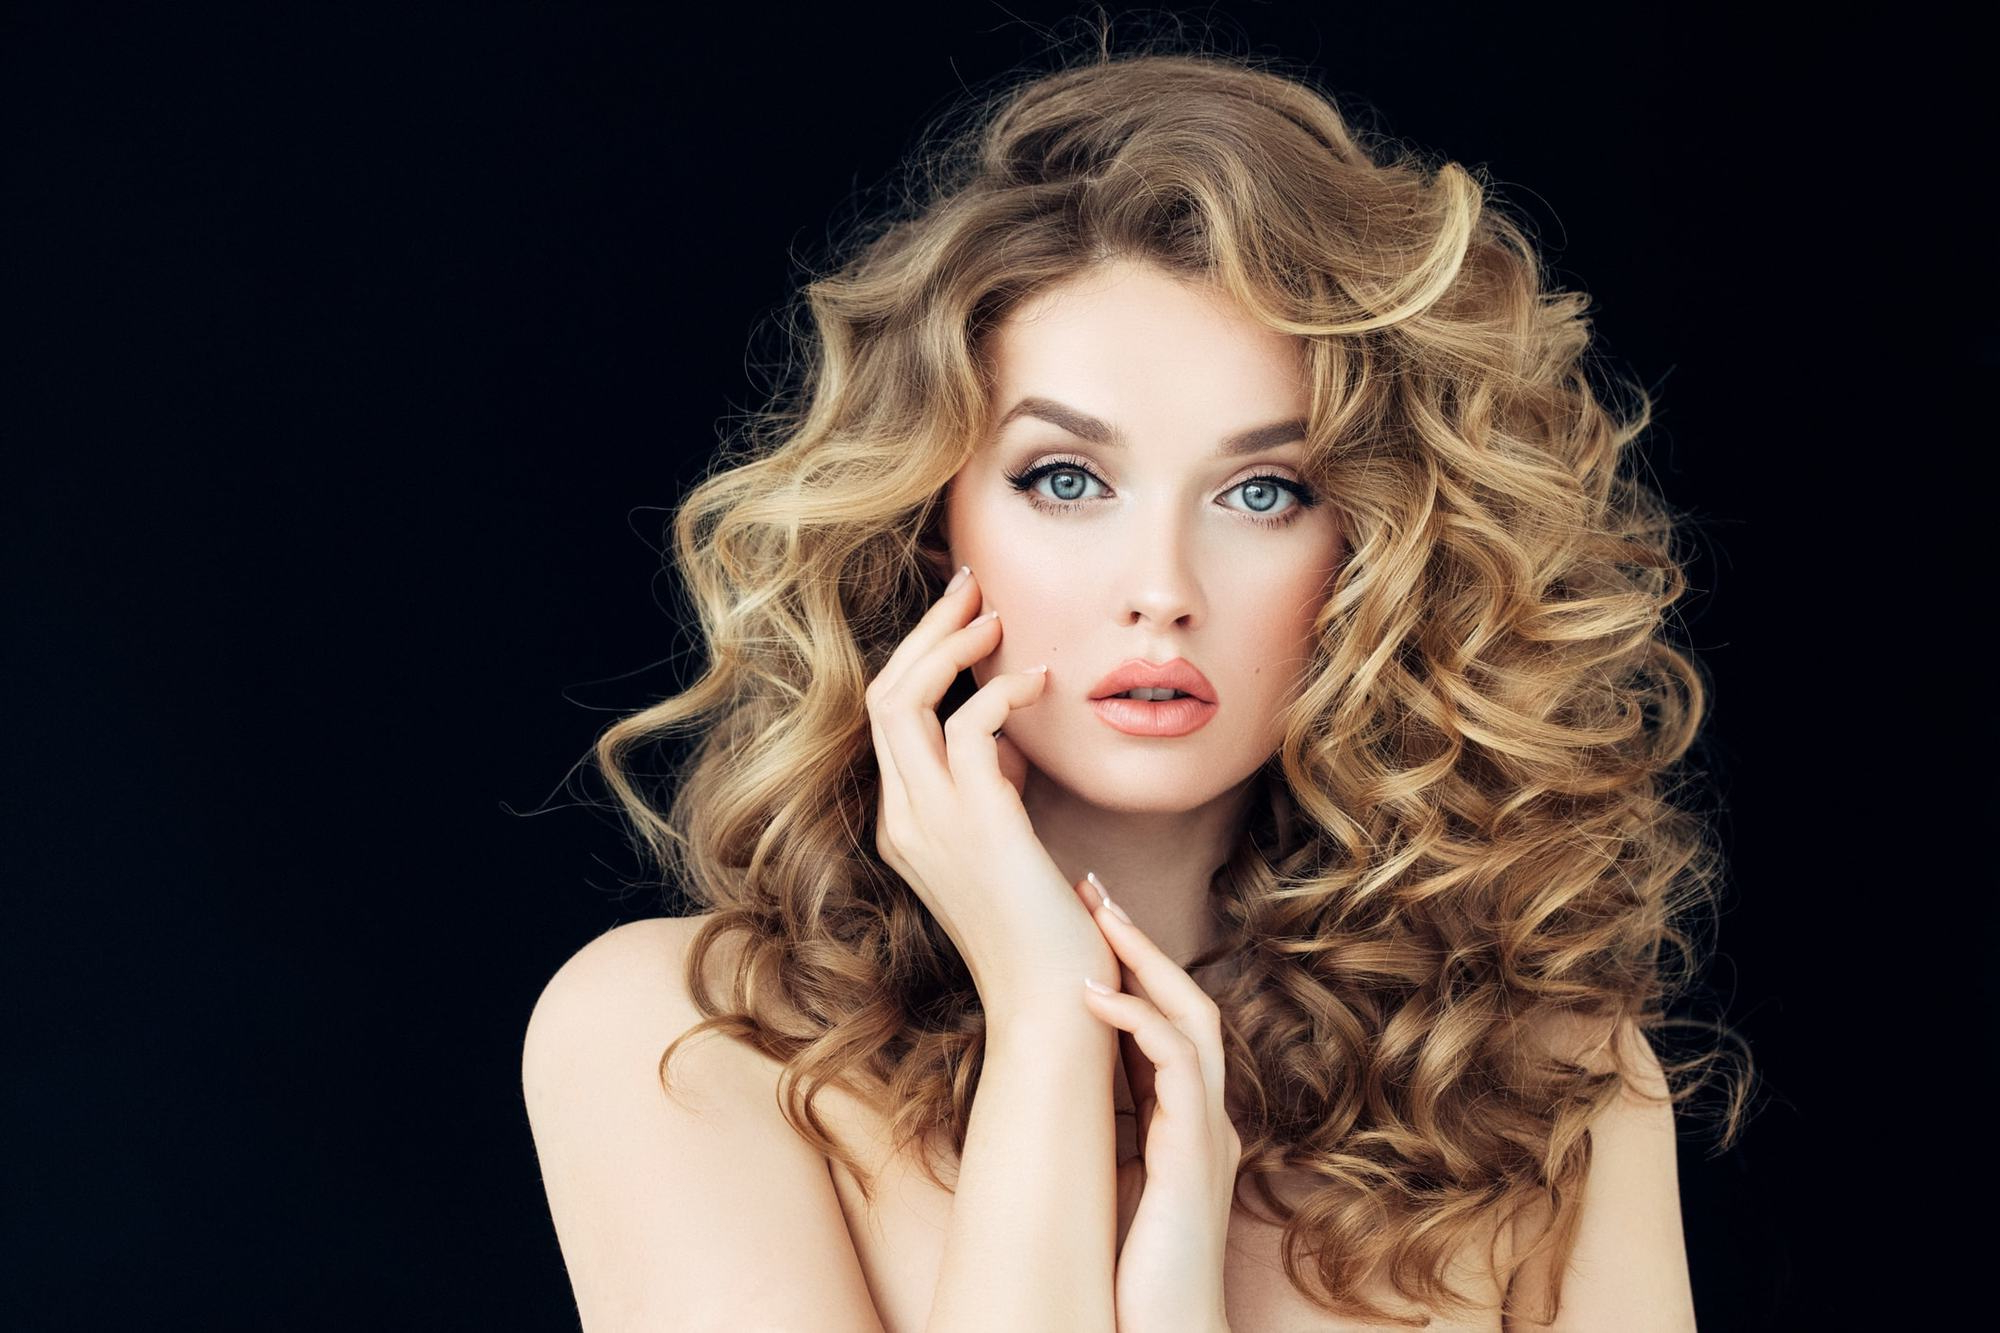 19 Best Curly Hairstyles For Long Hair In 2019   All Things For Curls And Blonde Highlights Hairstyles (View 2 of 20)